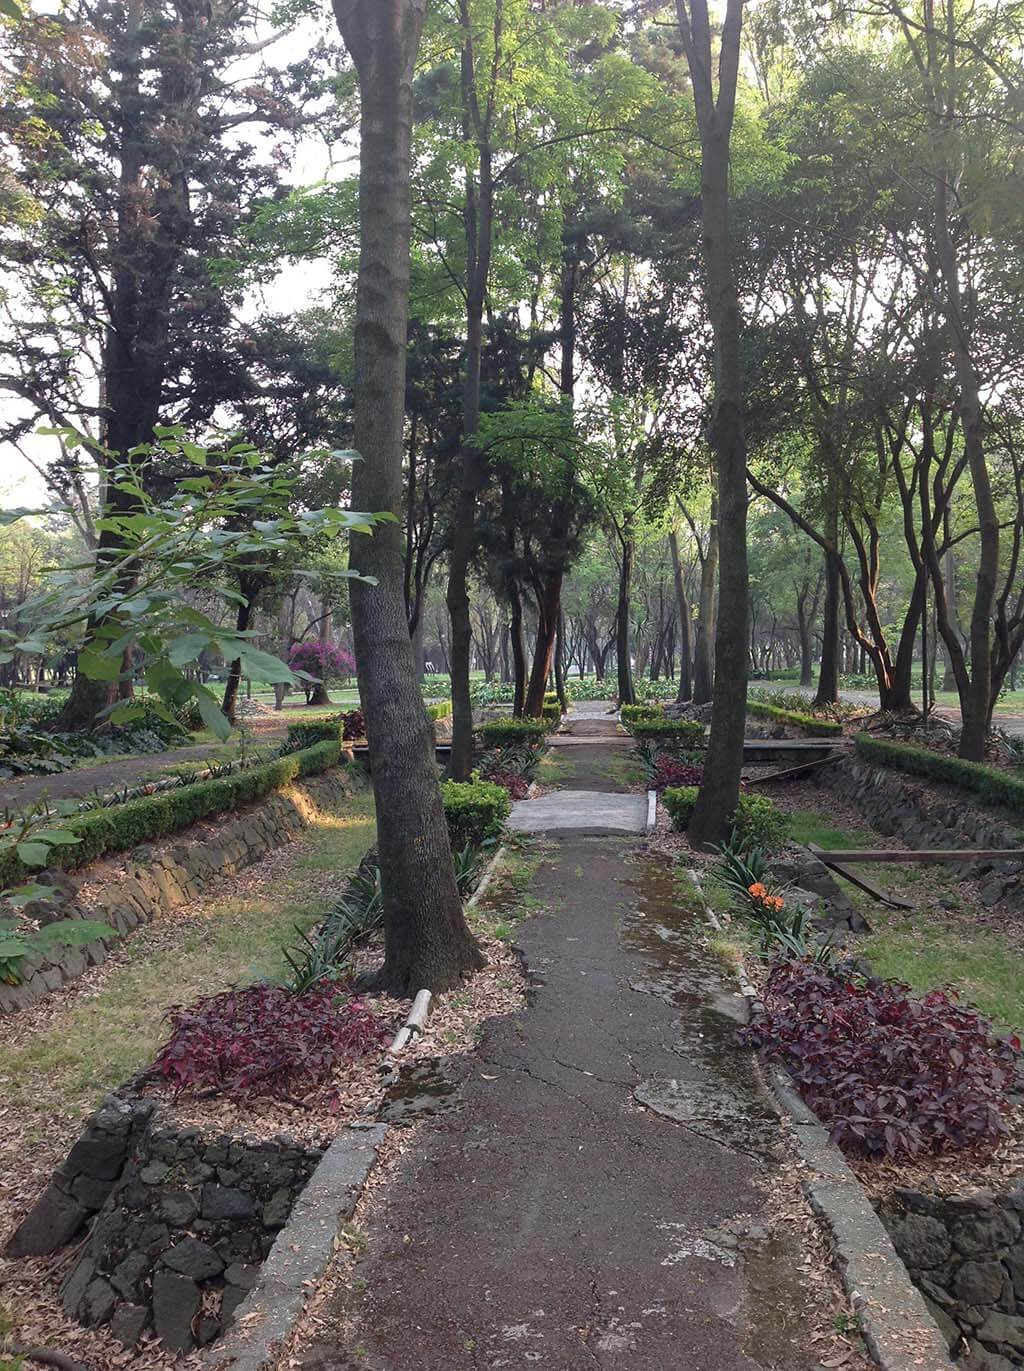 The best parks in Mexico City